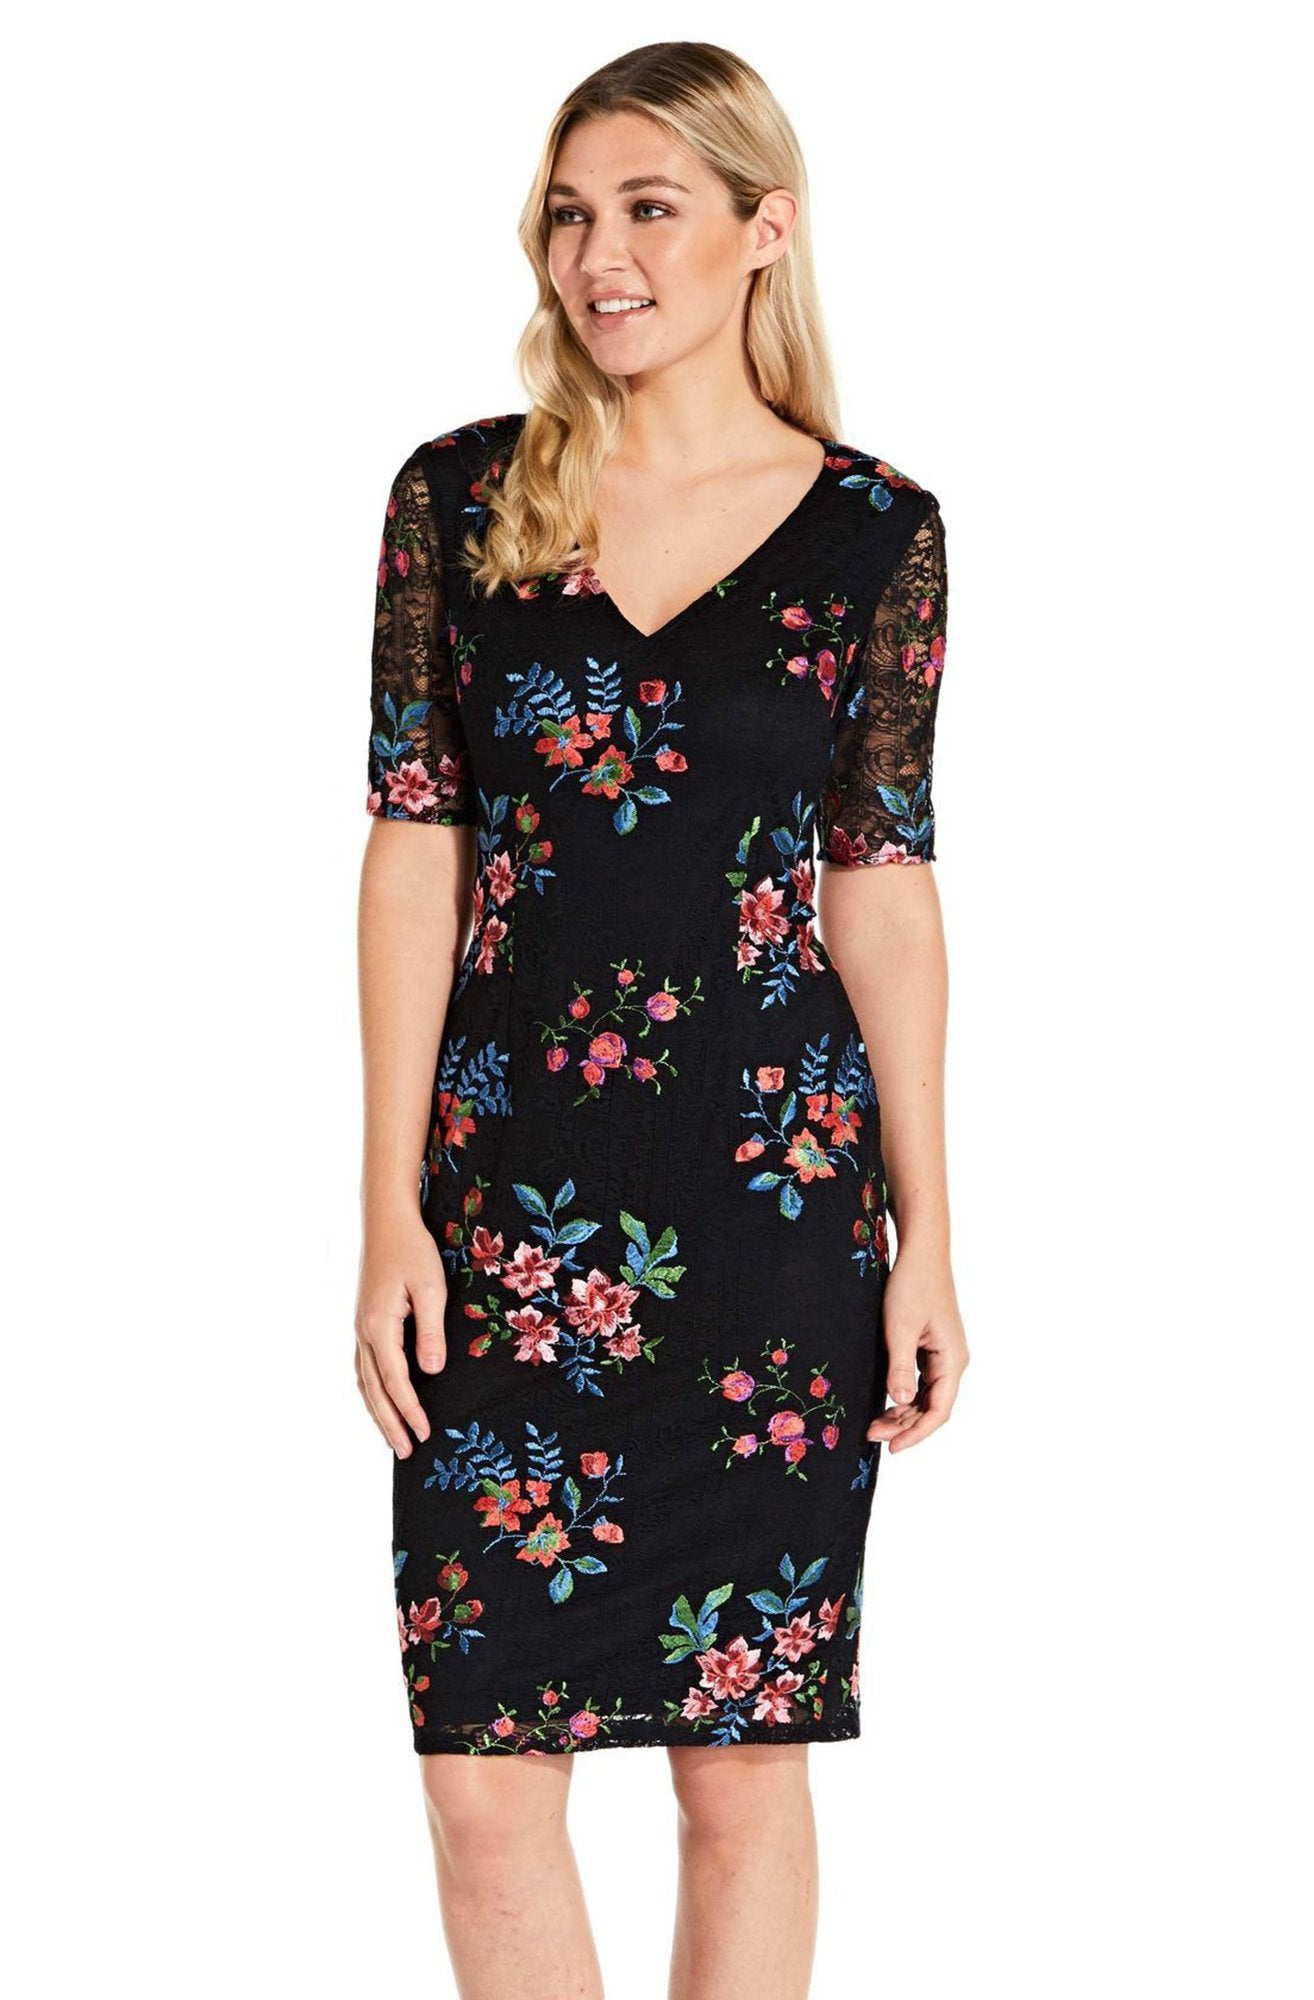 Adrianna Papell - AP1D102954 Floral Embroidered V-neck Sheath Dress In Black and Multi-Color